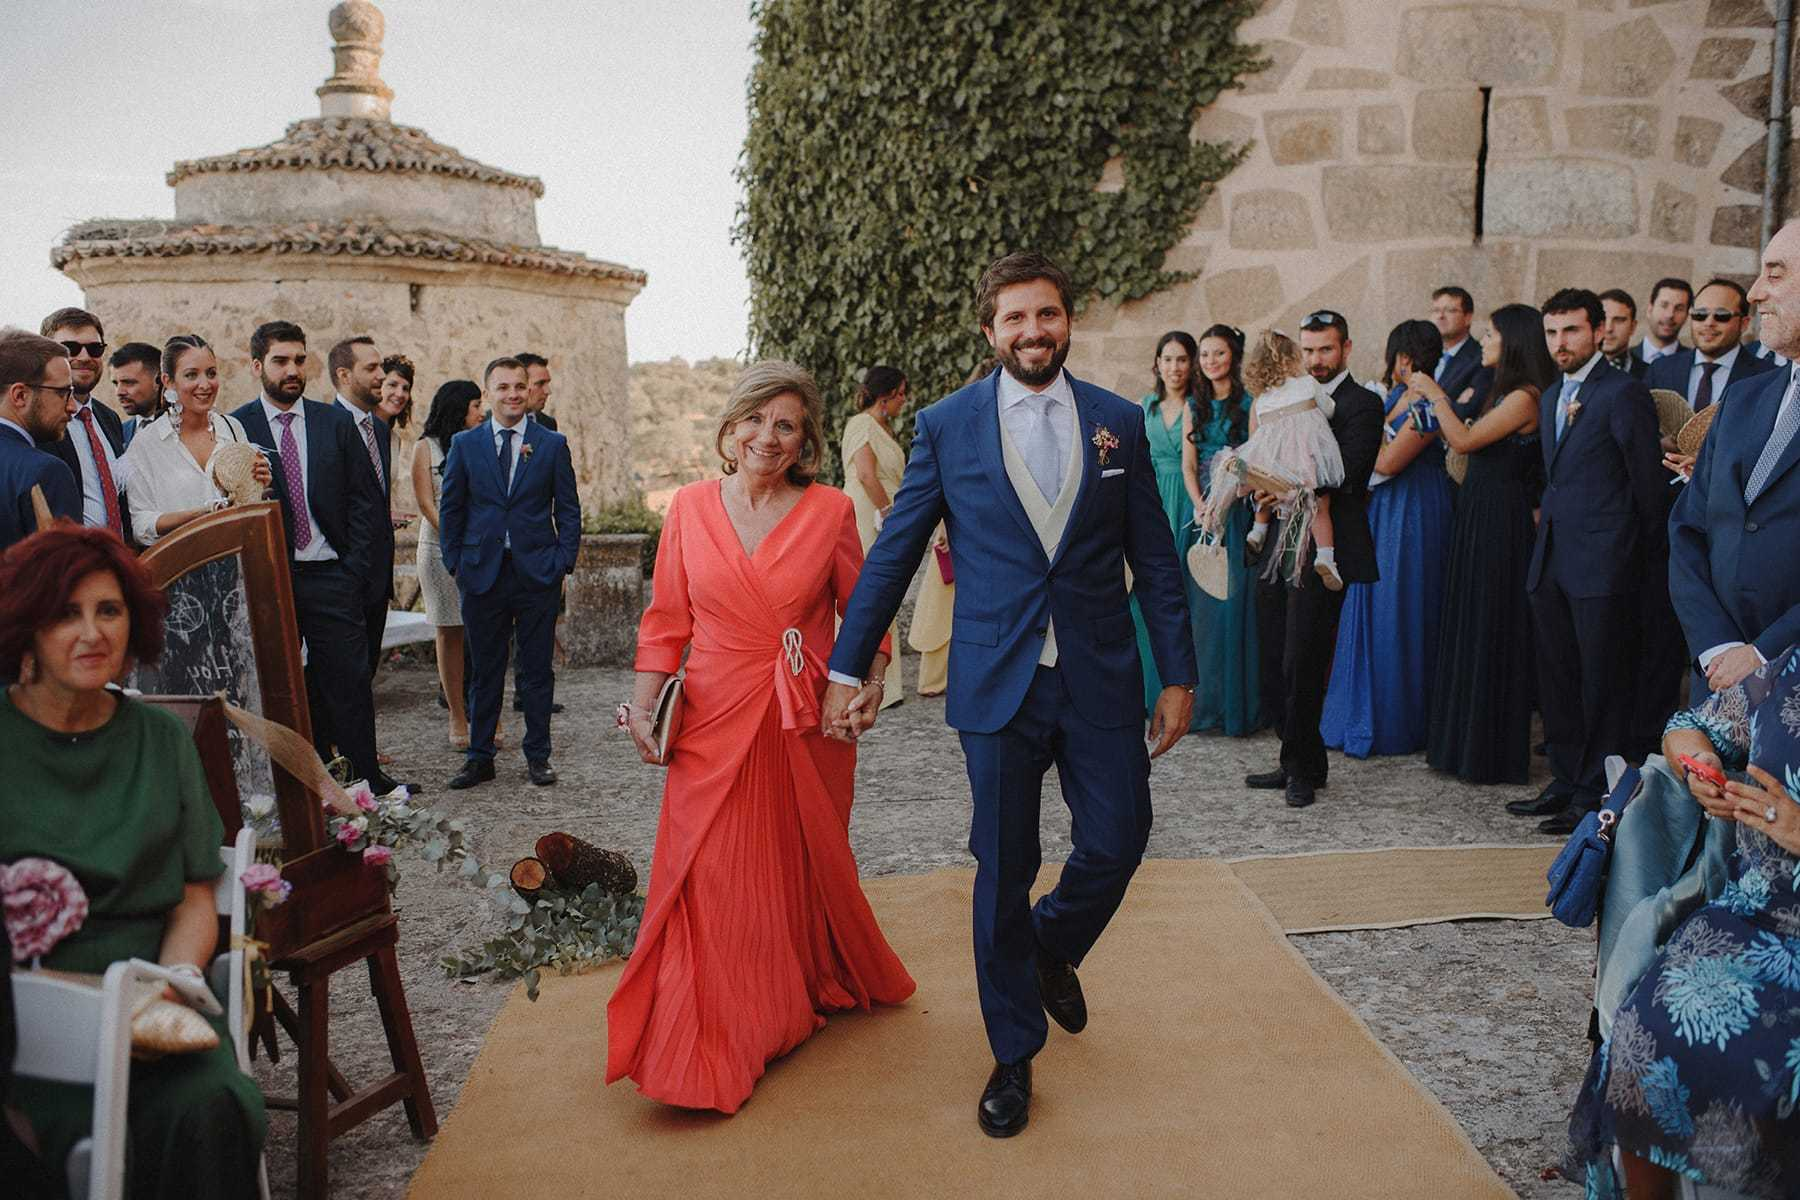 Novio entrando en una ceremonia civil